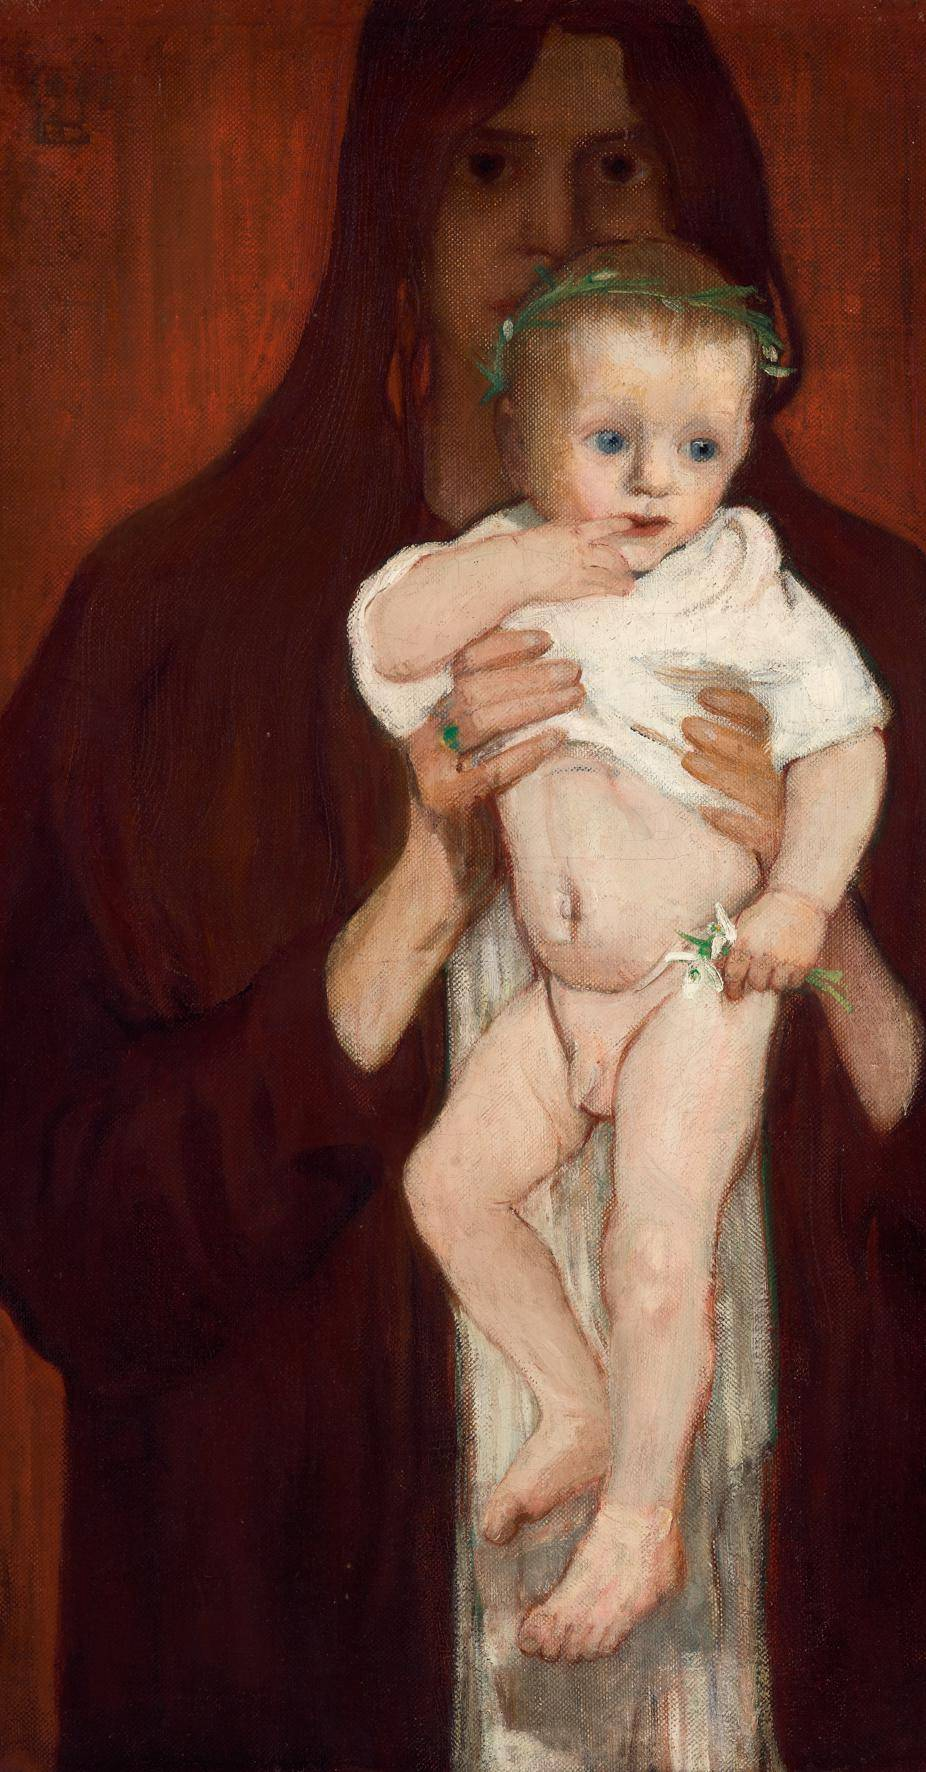 Woman holding her naked baby-son into the front, behind her a dark background.